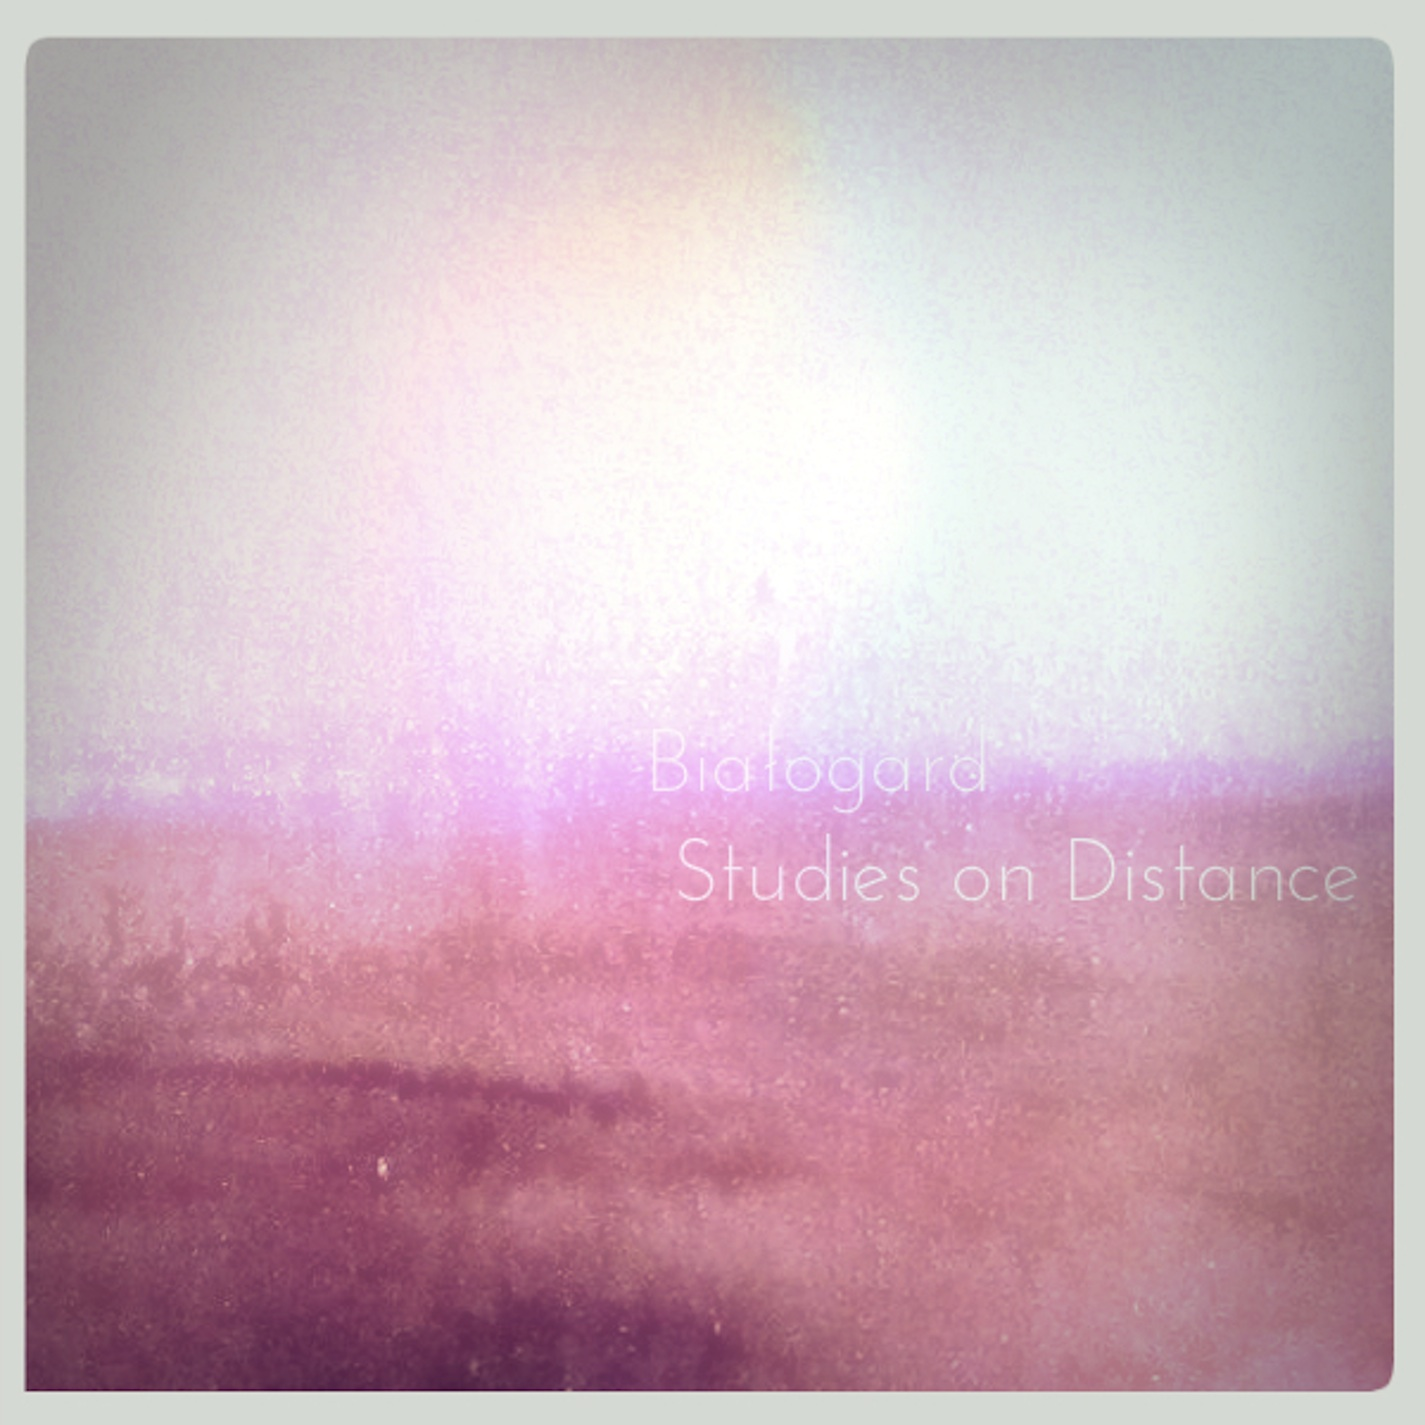 Studies_on_distance_14251367182873